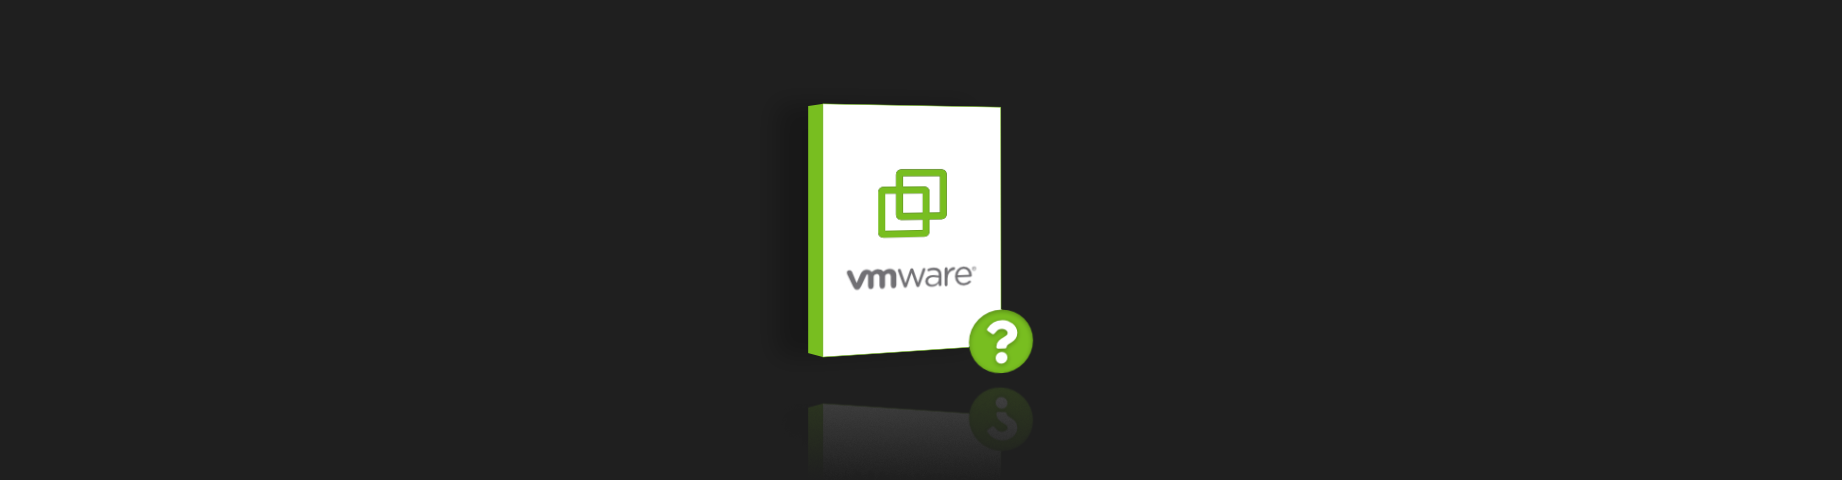 VMware which to choose